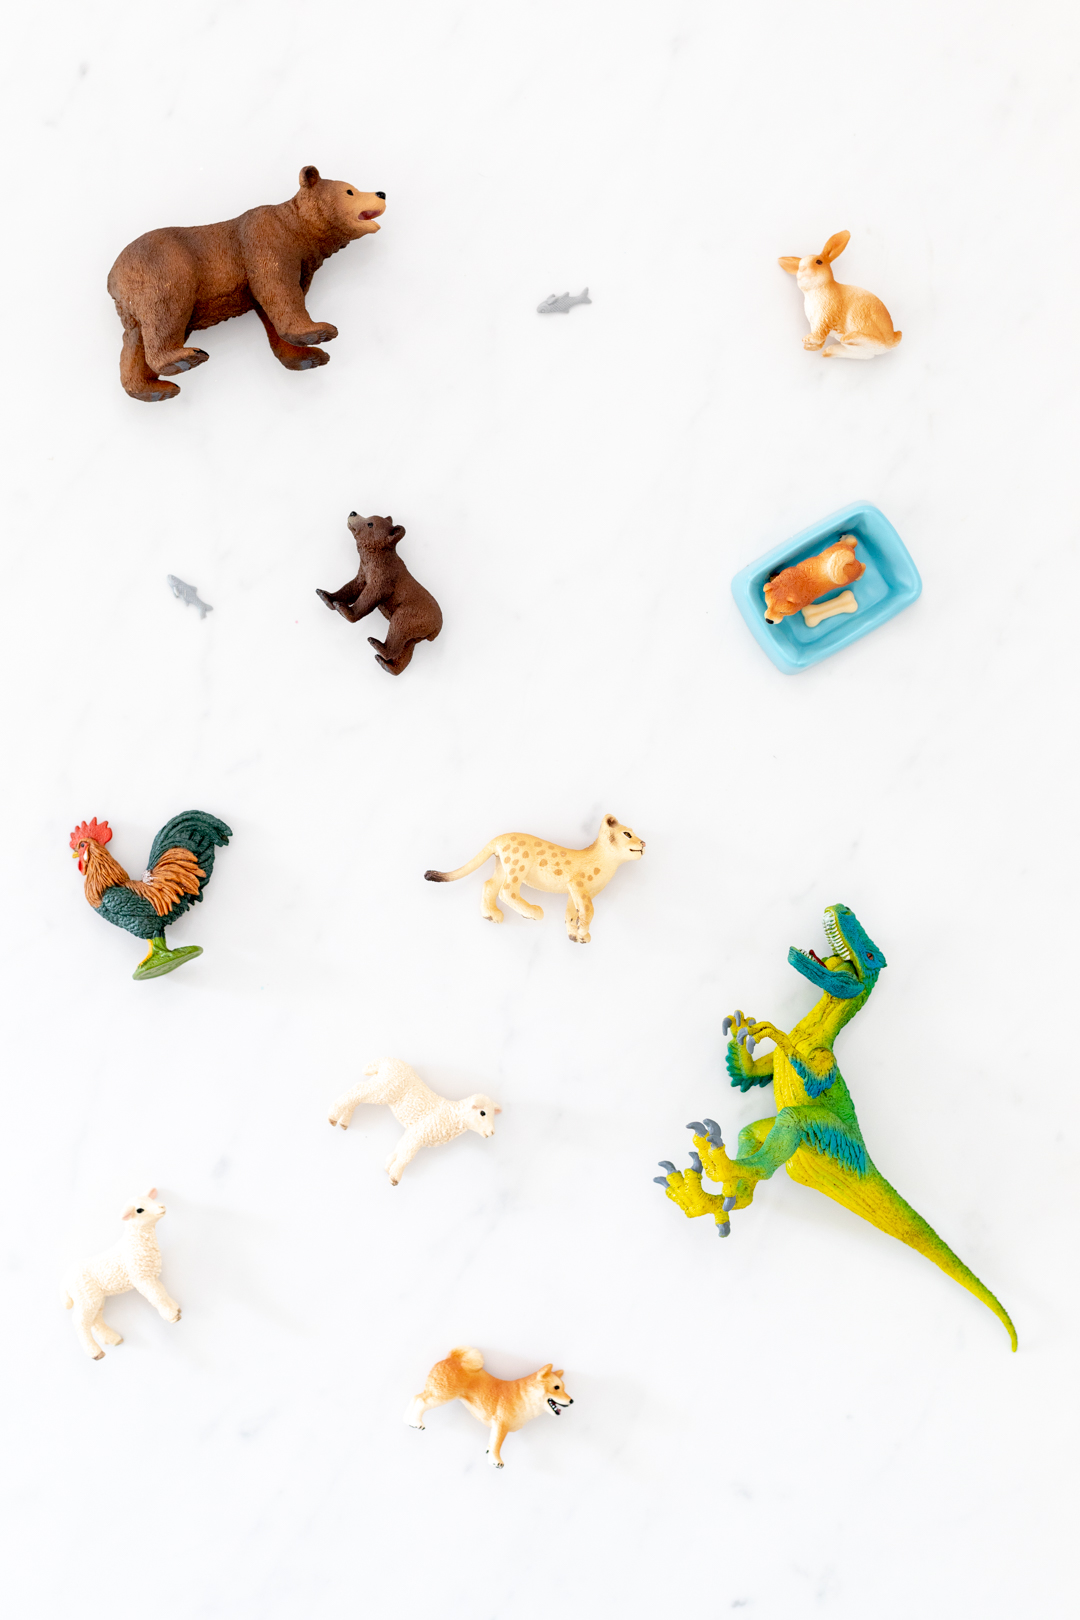 Animal figurines from bears to dinos